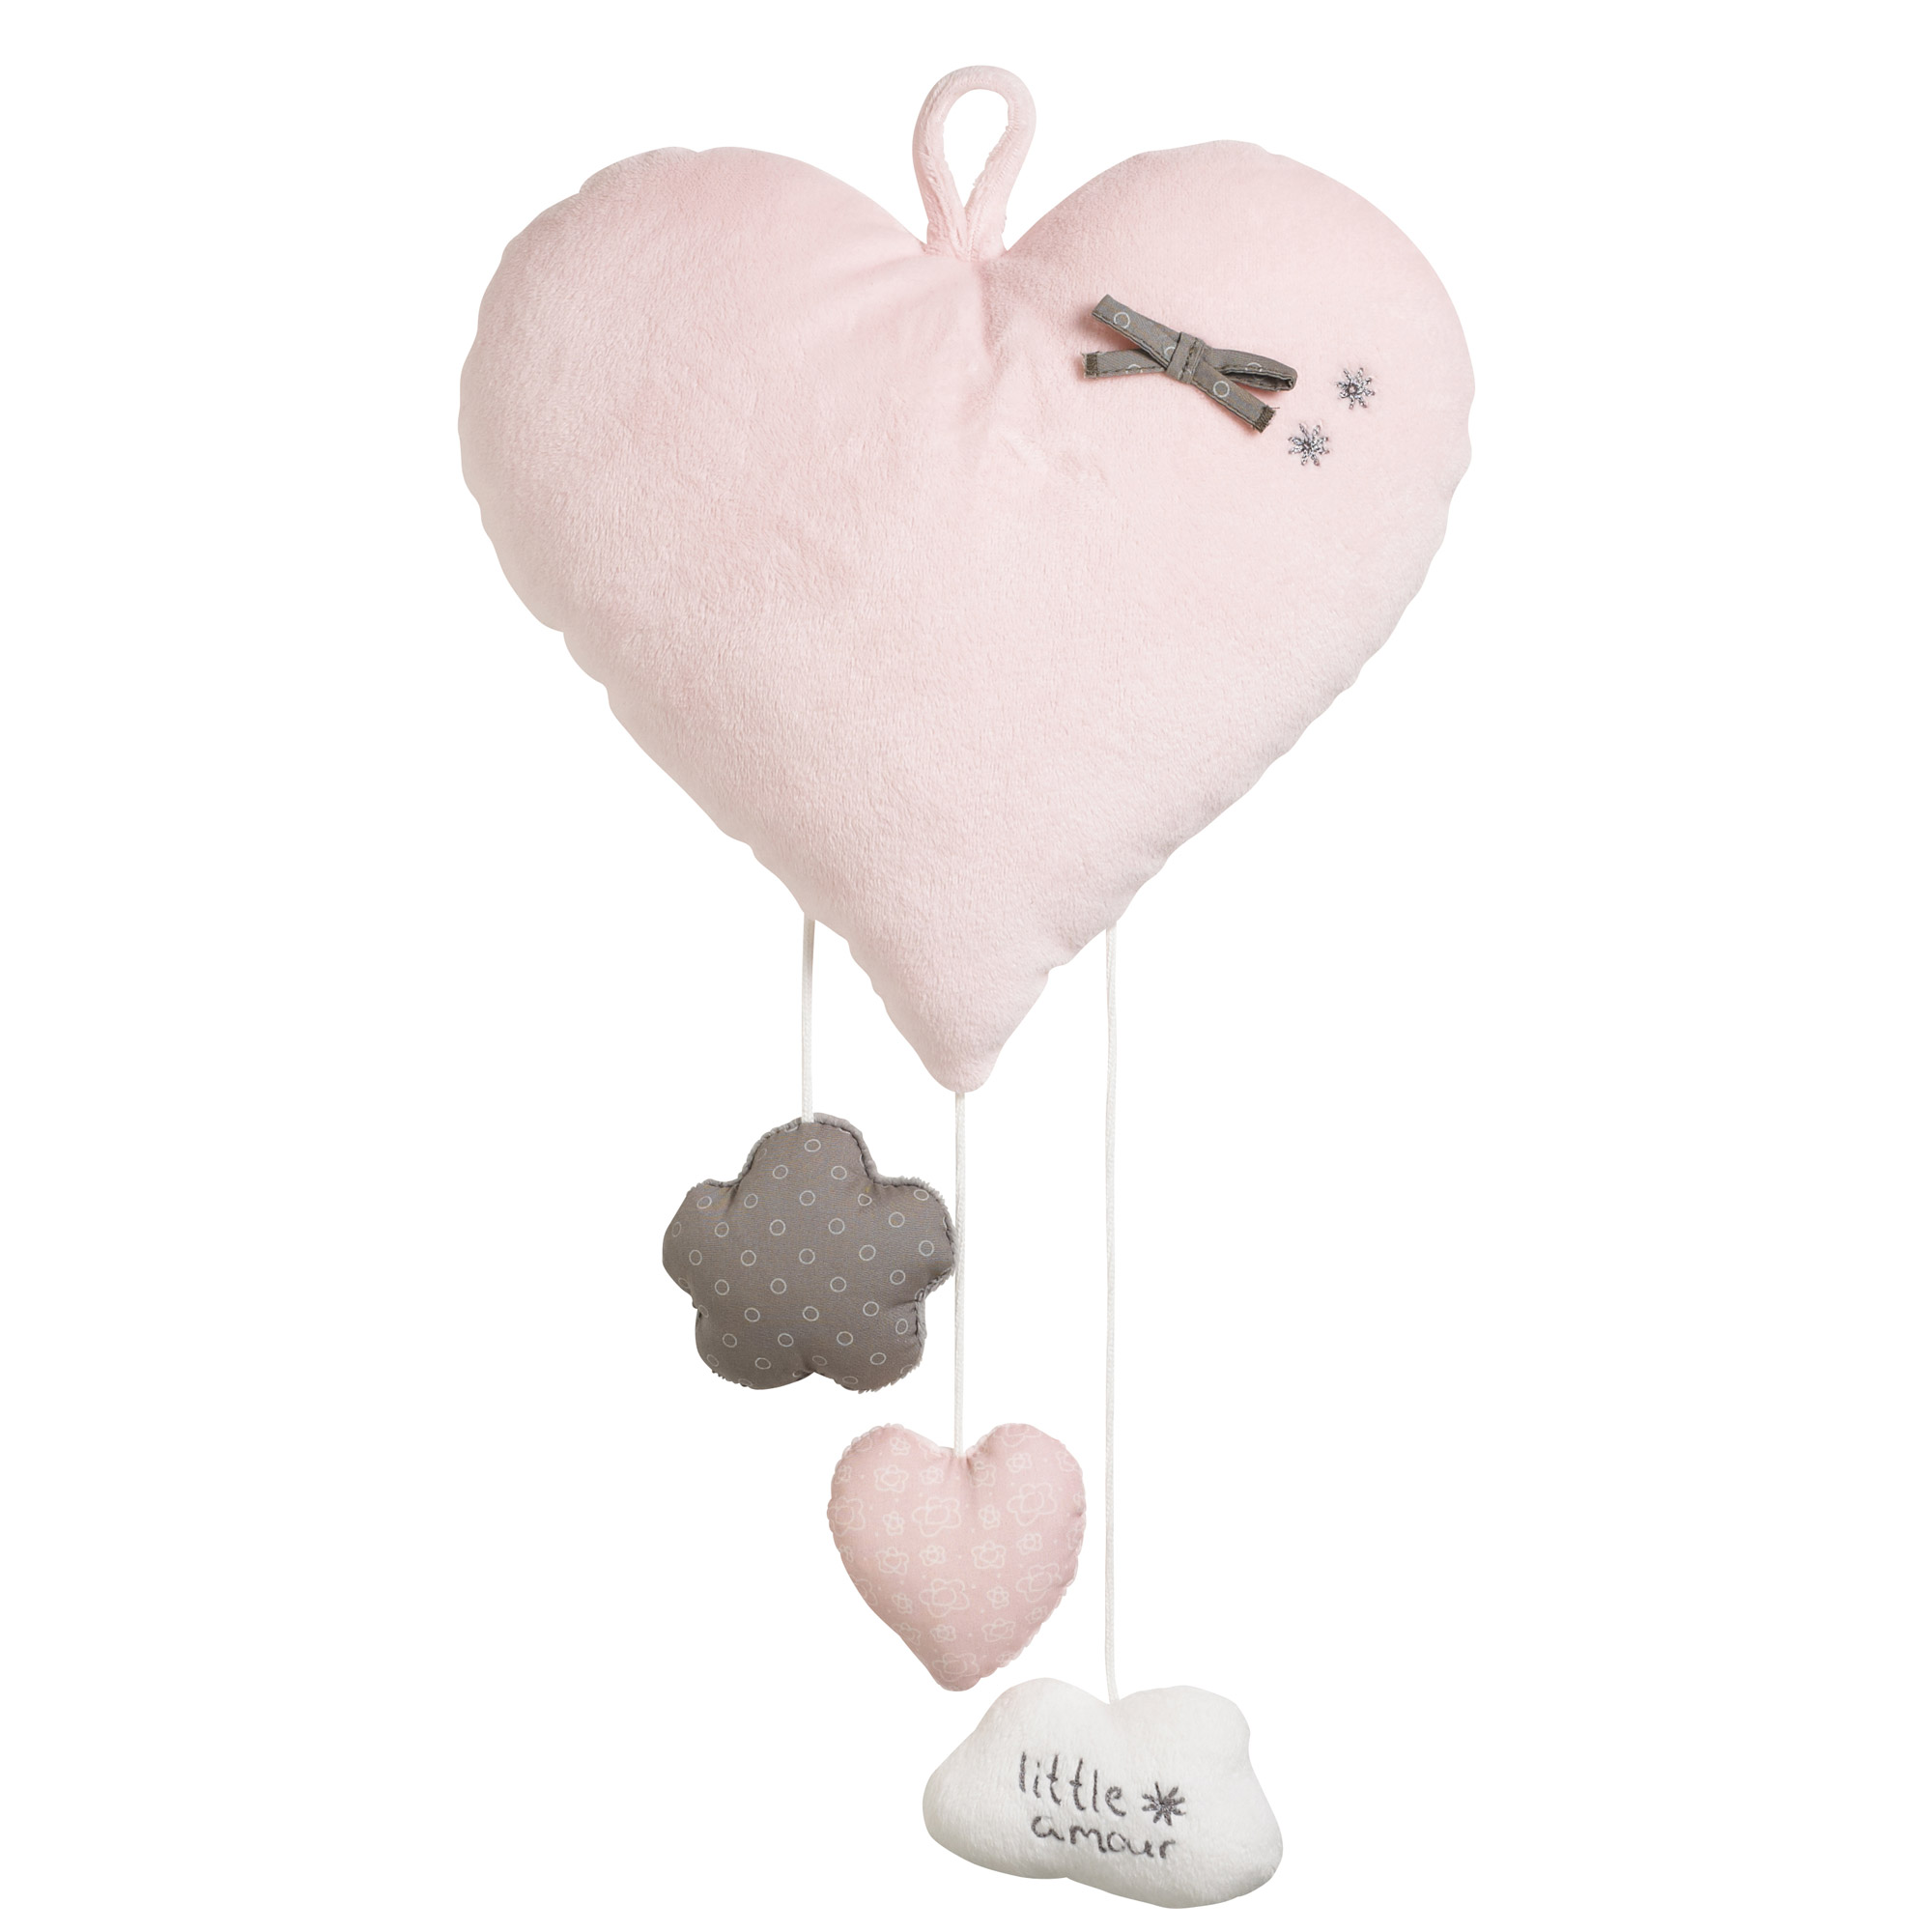 Lilibelle suspension décoration murale Rose  de Sauthon Baby Déco